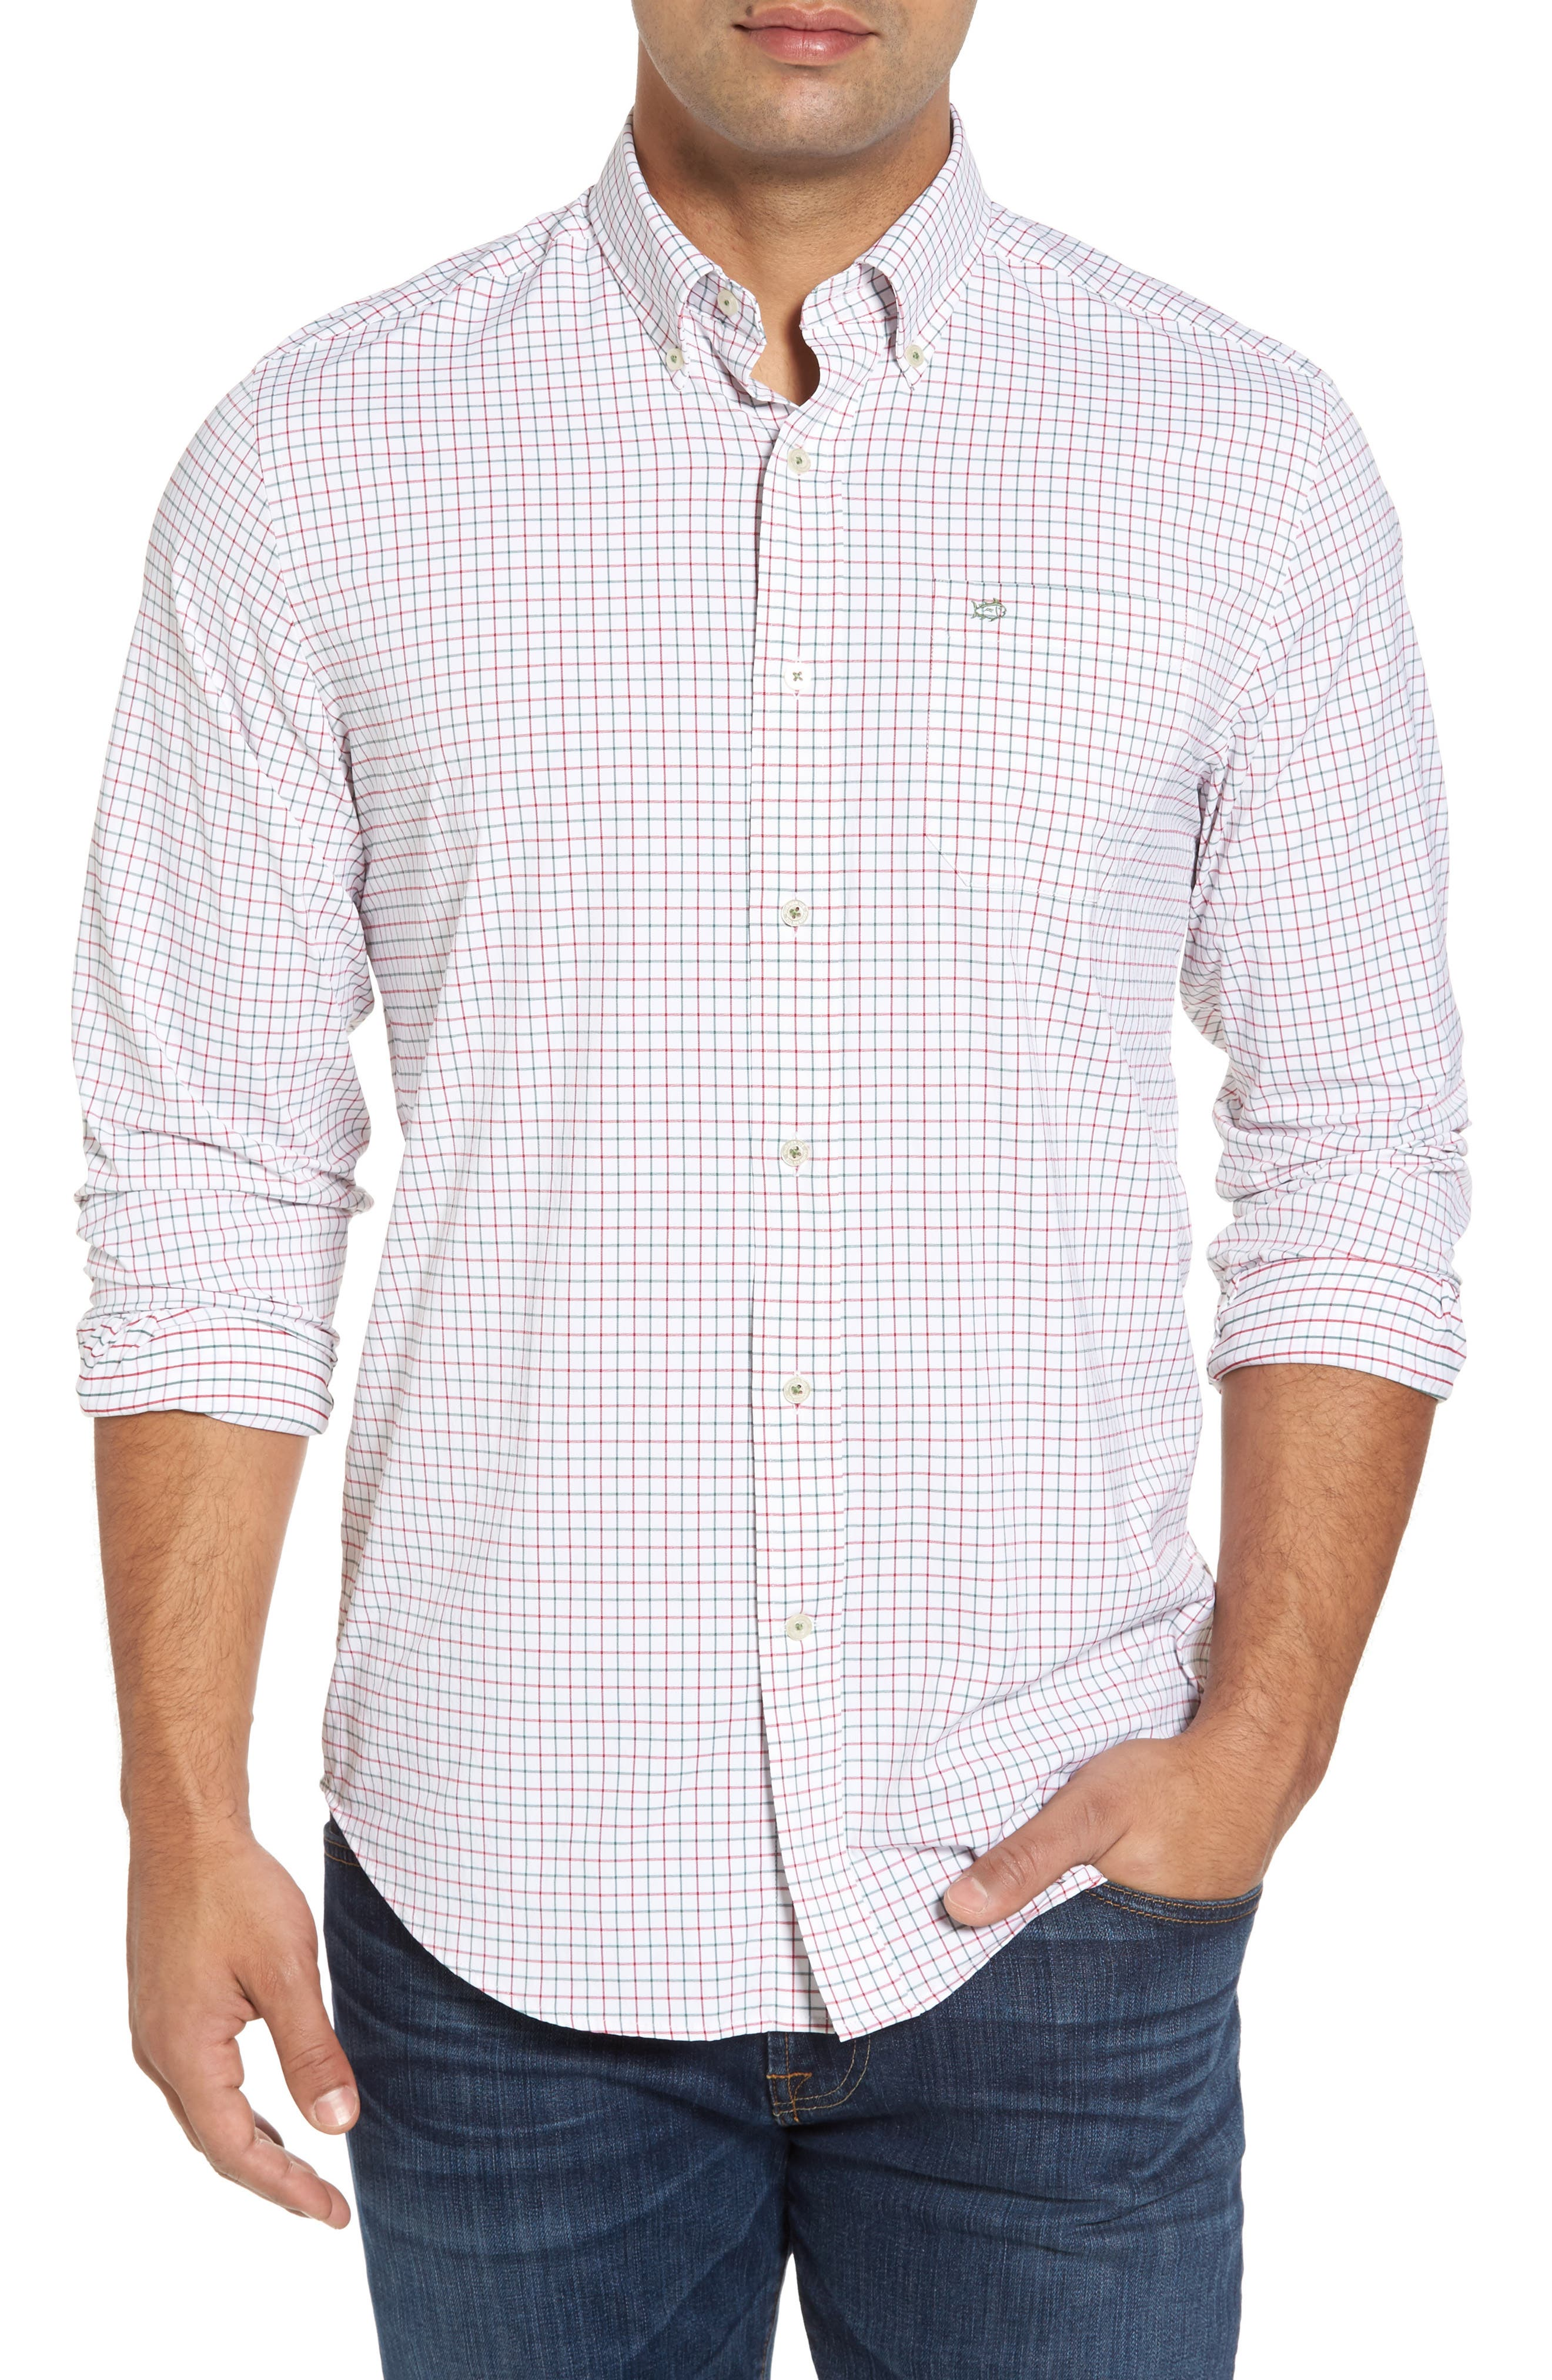 Cromwell Tattersall Performance Classic Fit Sport Shirt,                         Main,                         color, Classic White